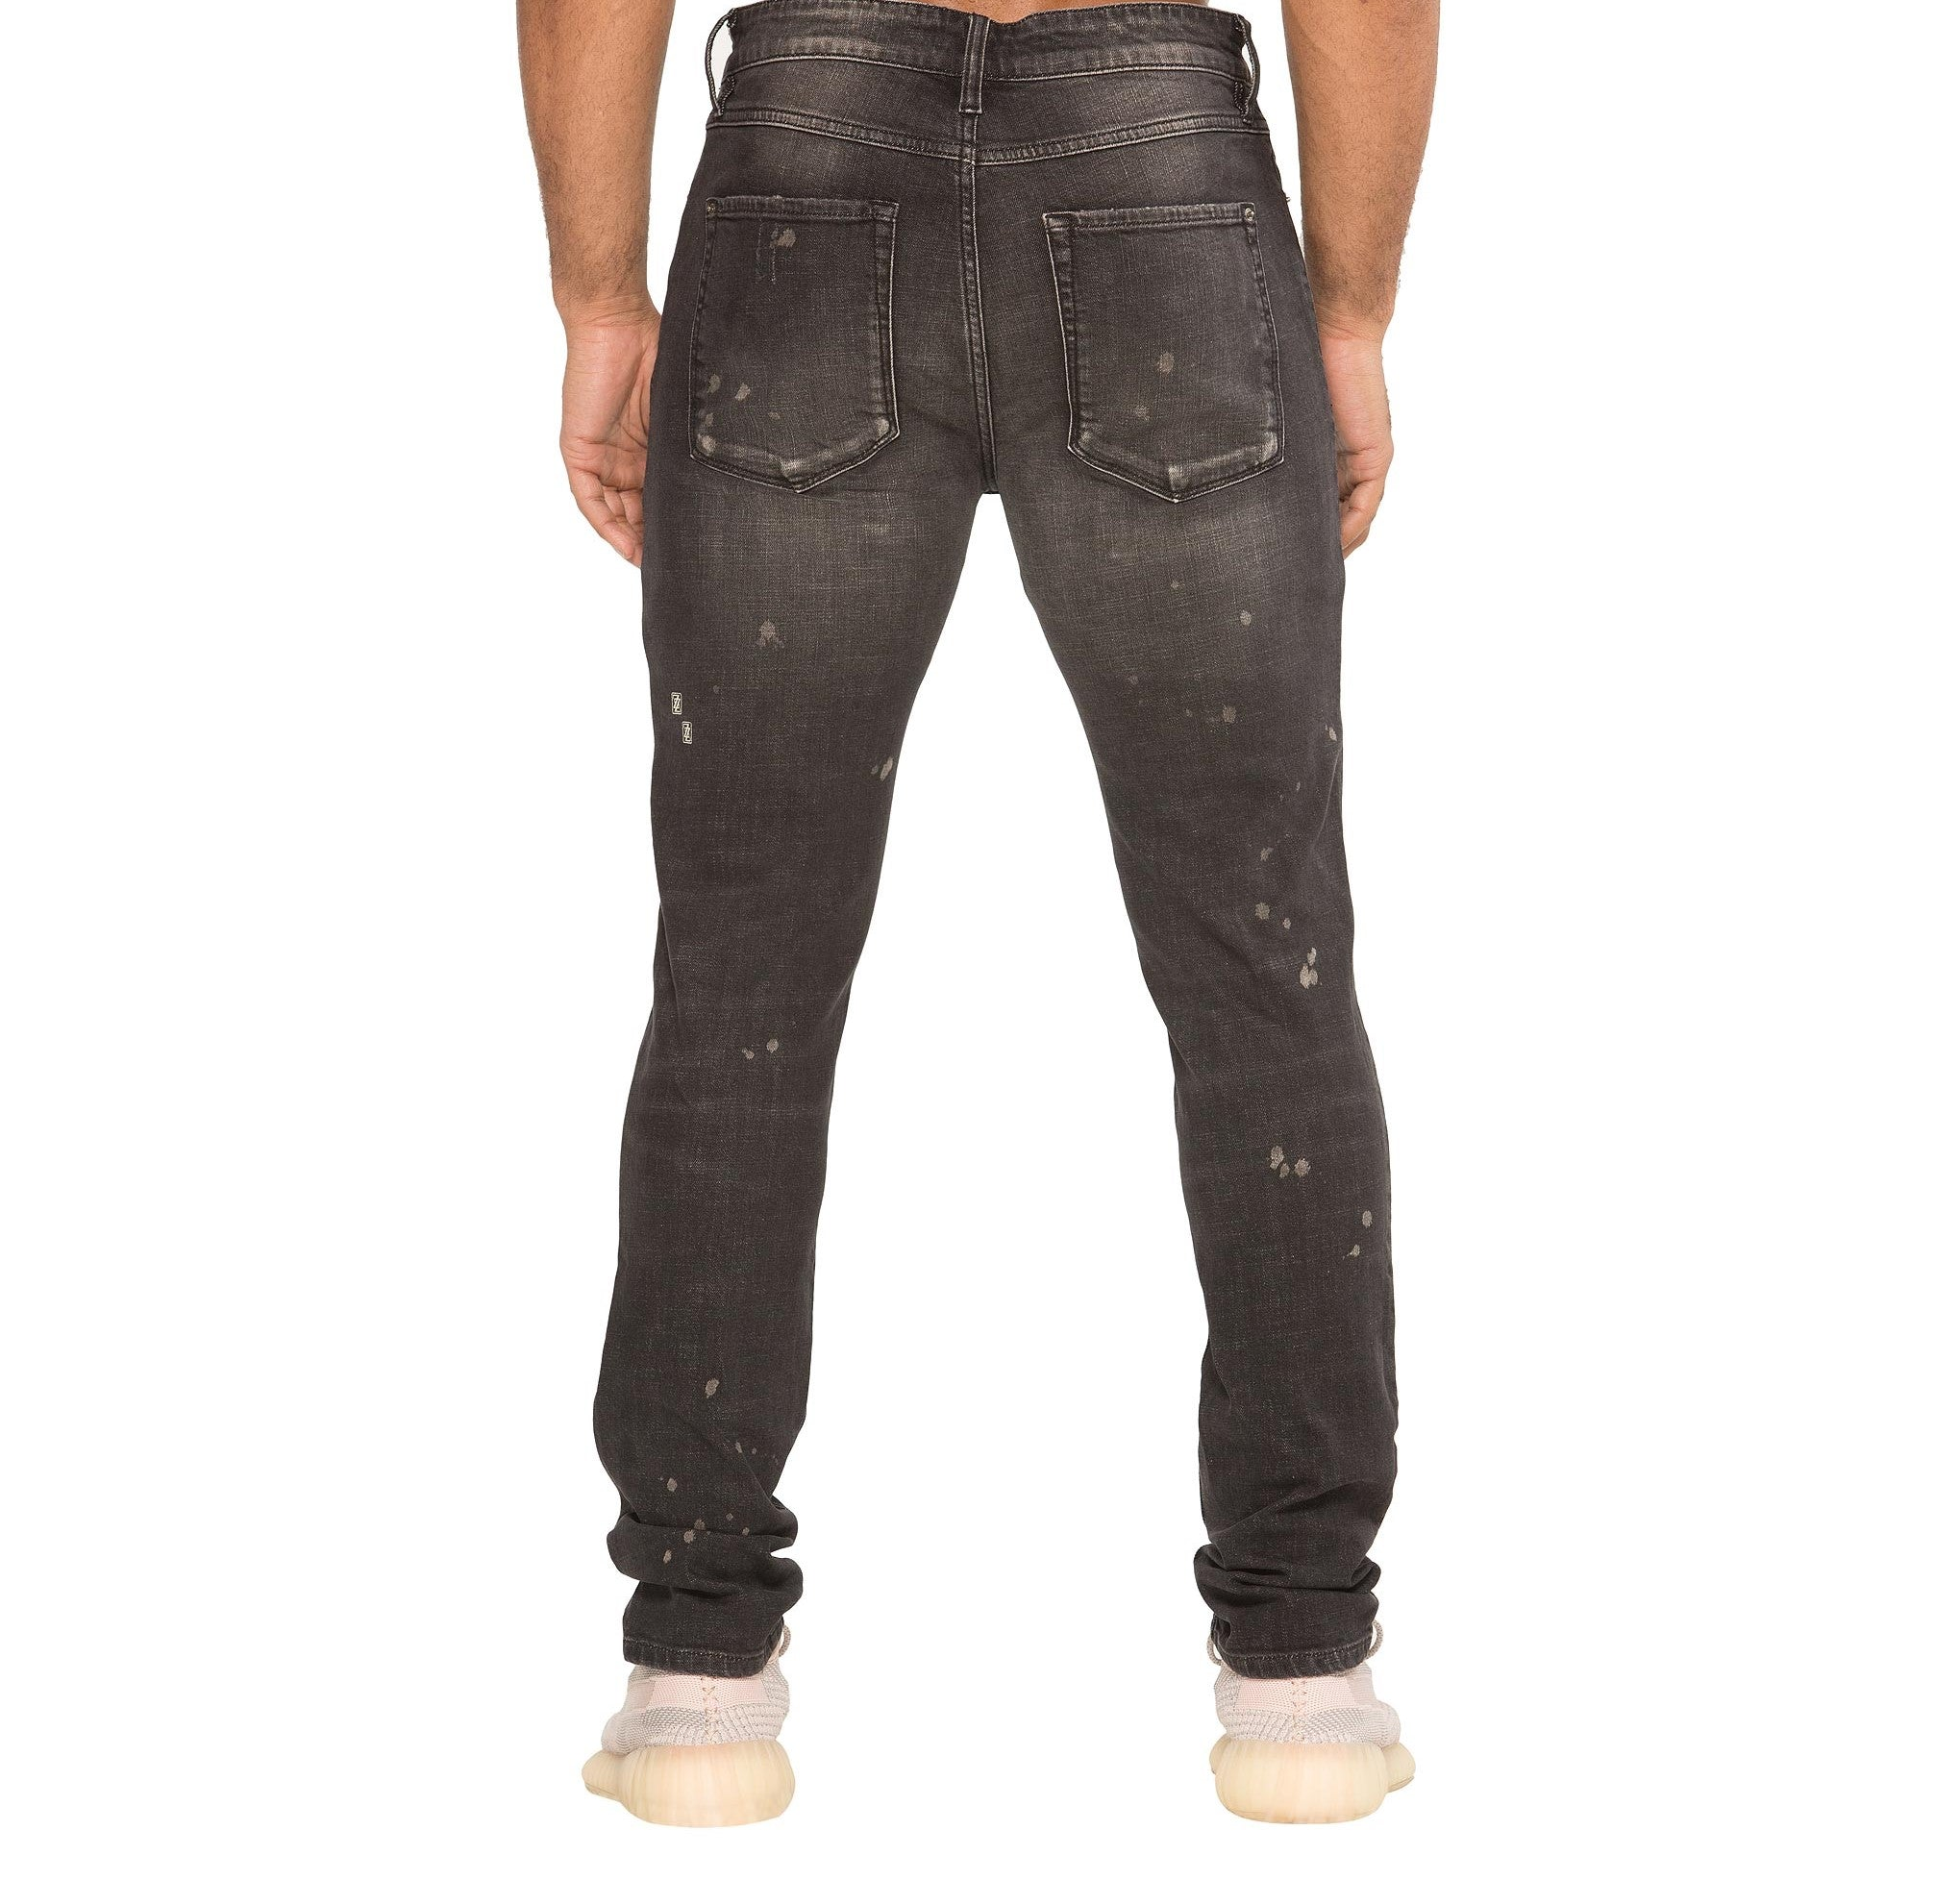 MONTE CARLO JEAN - BLACK WASH